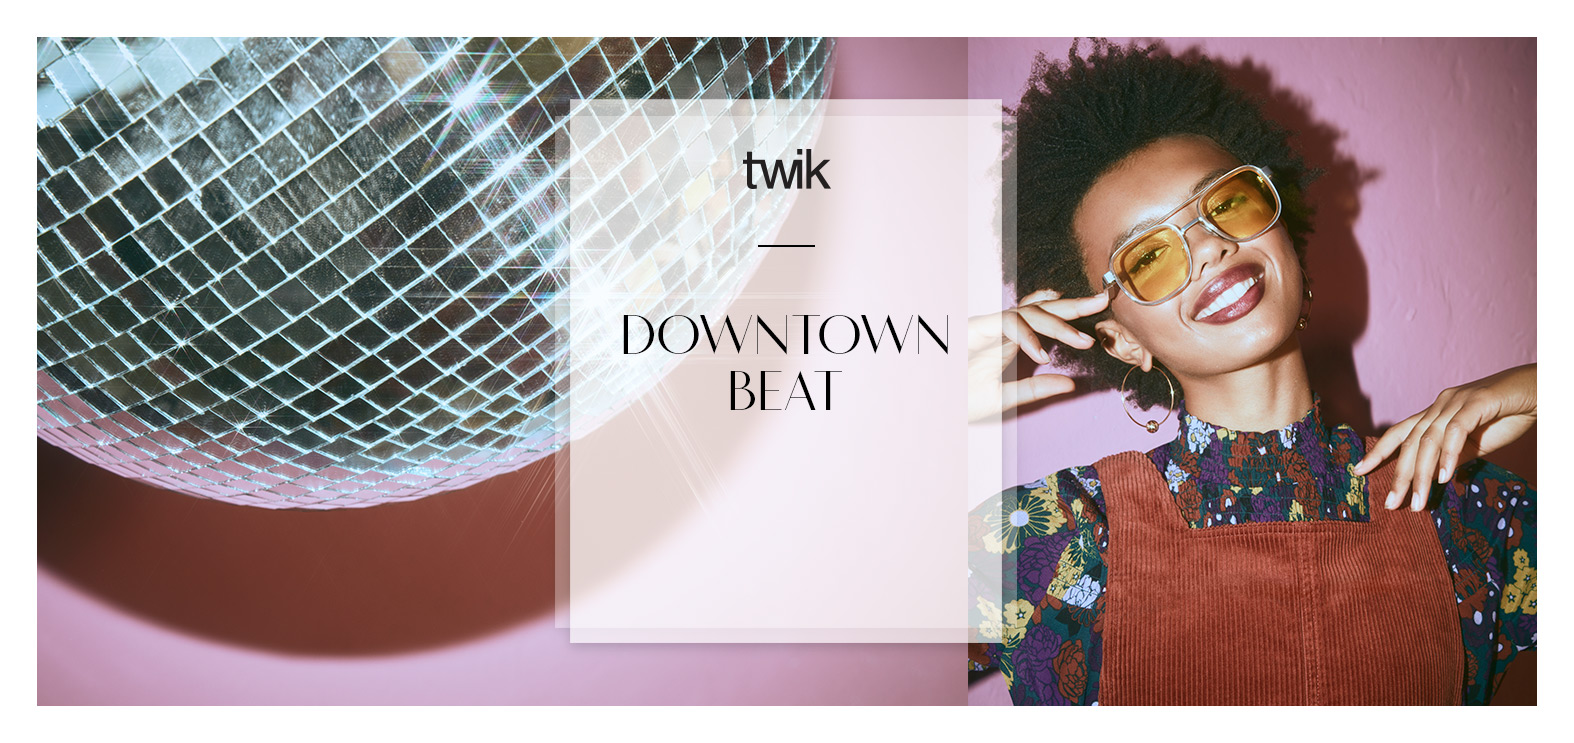 BLOC07b-TWIK-BGL_Downtown Beat.psd